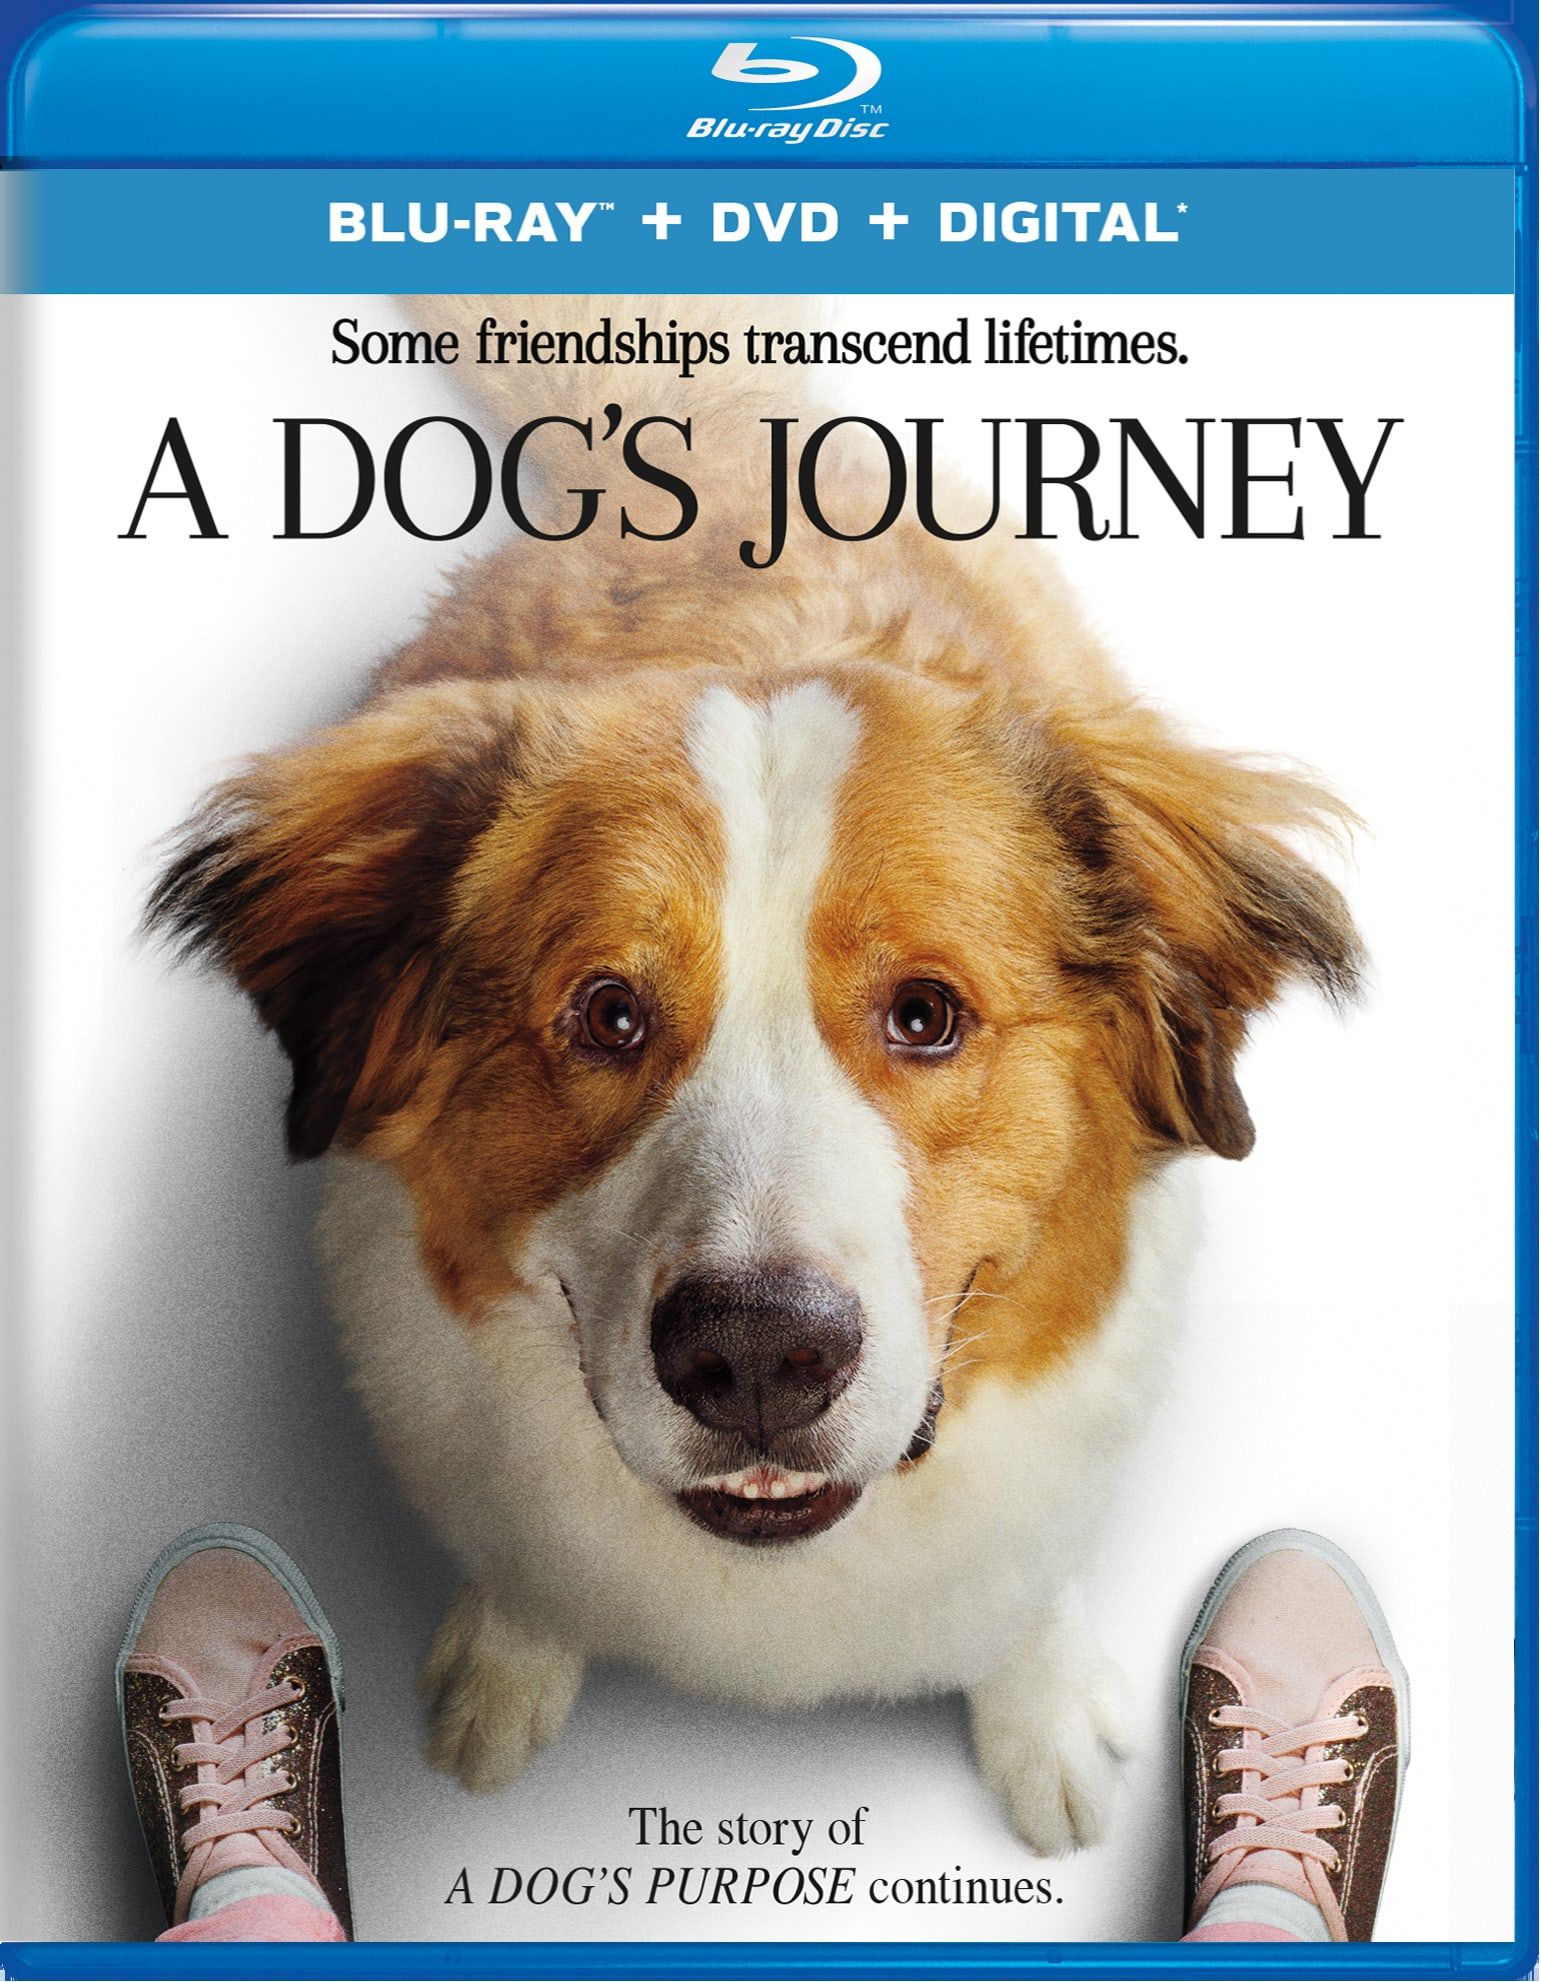 A Dog's Journey (DVD + Digital) [Blu-ray]